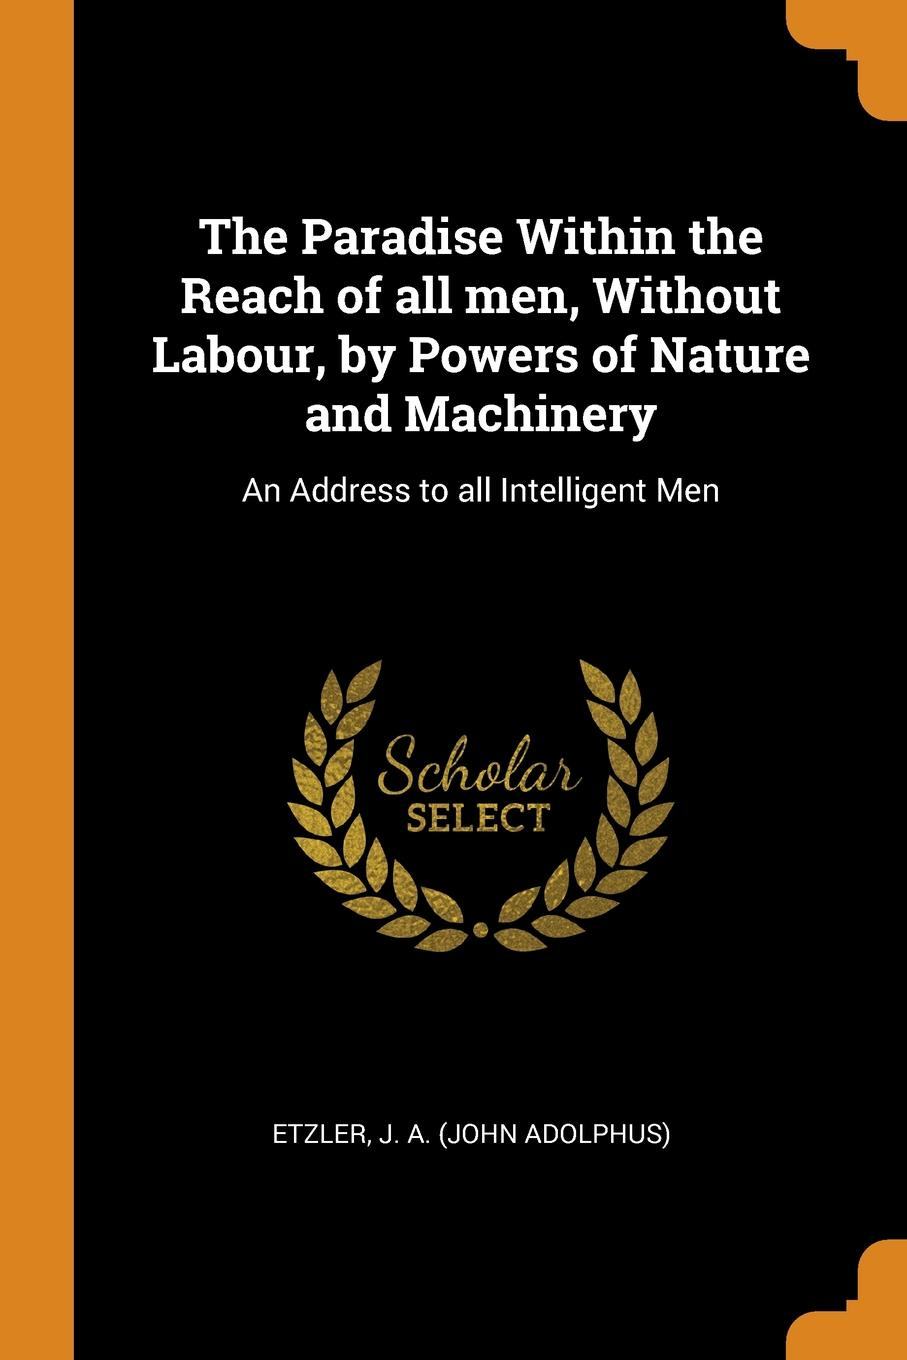 лучшая цена The Paradise Within the Reach of all men, Without Labour, by Powers of Nature and Machinery. An Address to all Intelligent Men